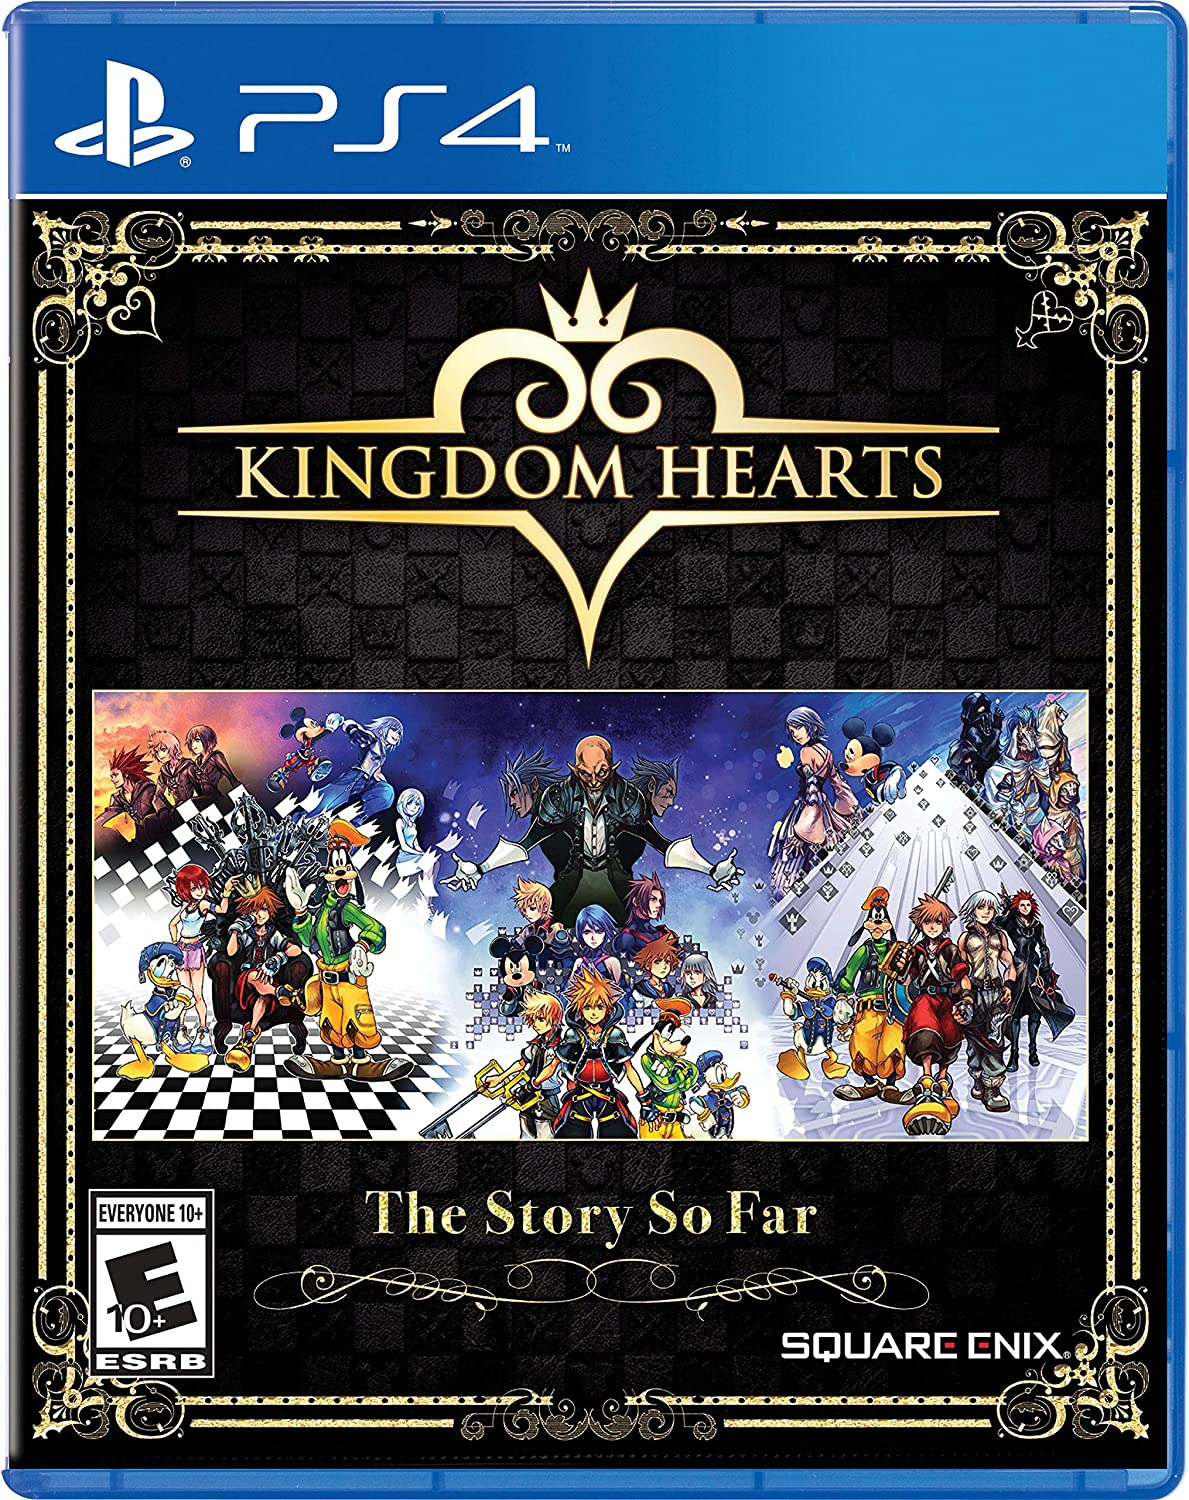 Kingdom Hearts Iii En Playstation 4 Juegos 656 699